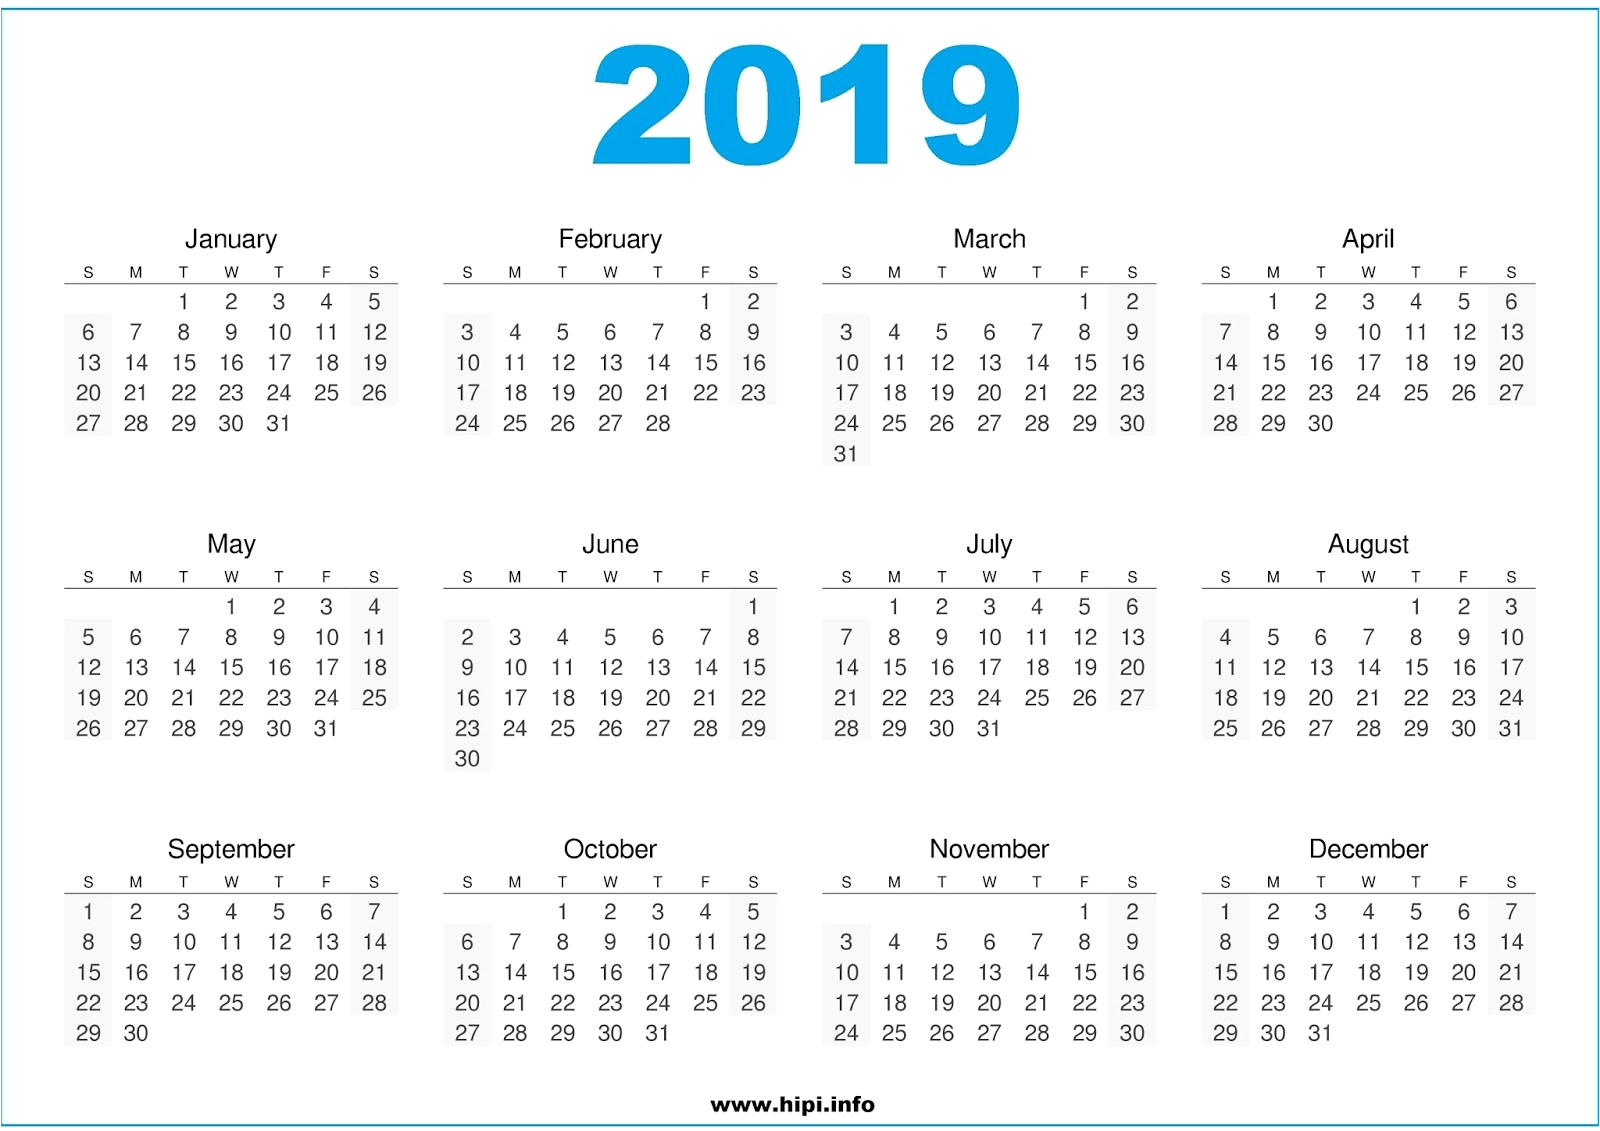 Liturgical Calendar 2019 2020 Printable 2019 Calendar Free Printable throughout 2020 Printable Liturgical Calendar Free